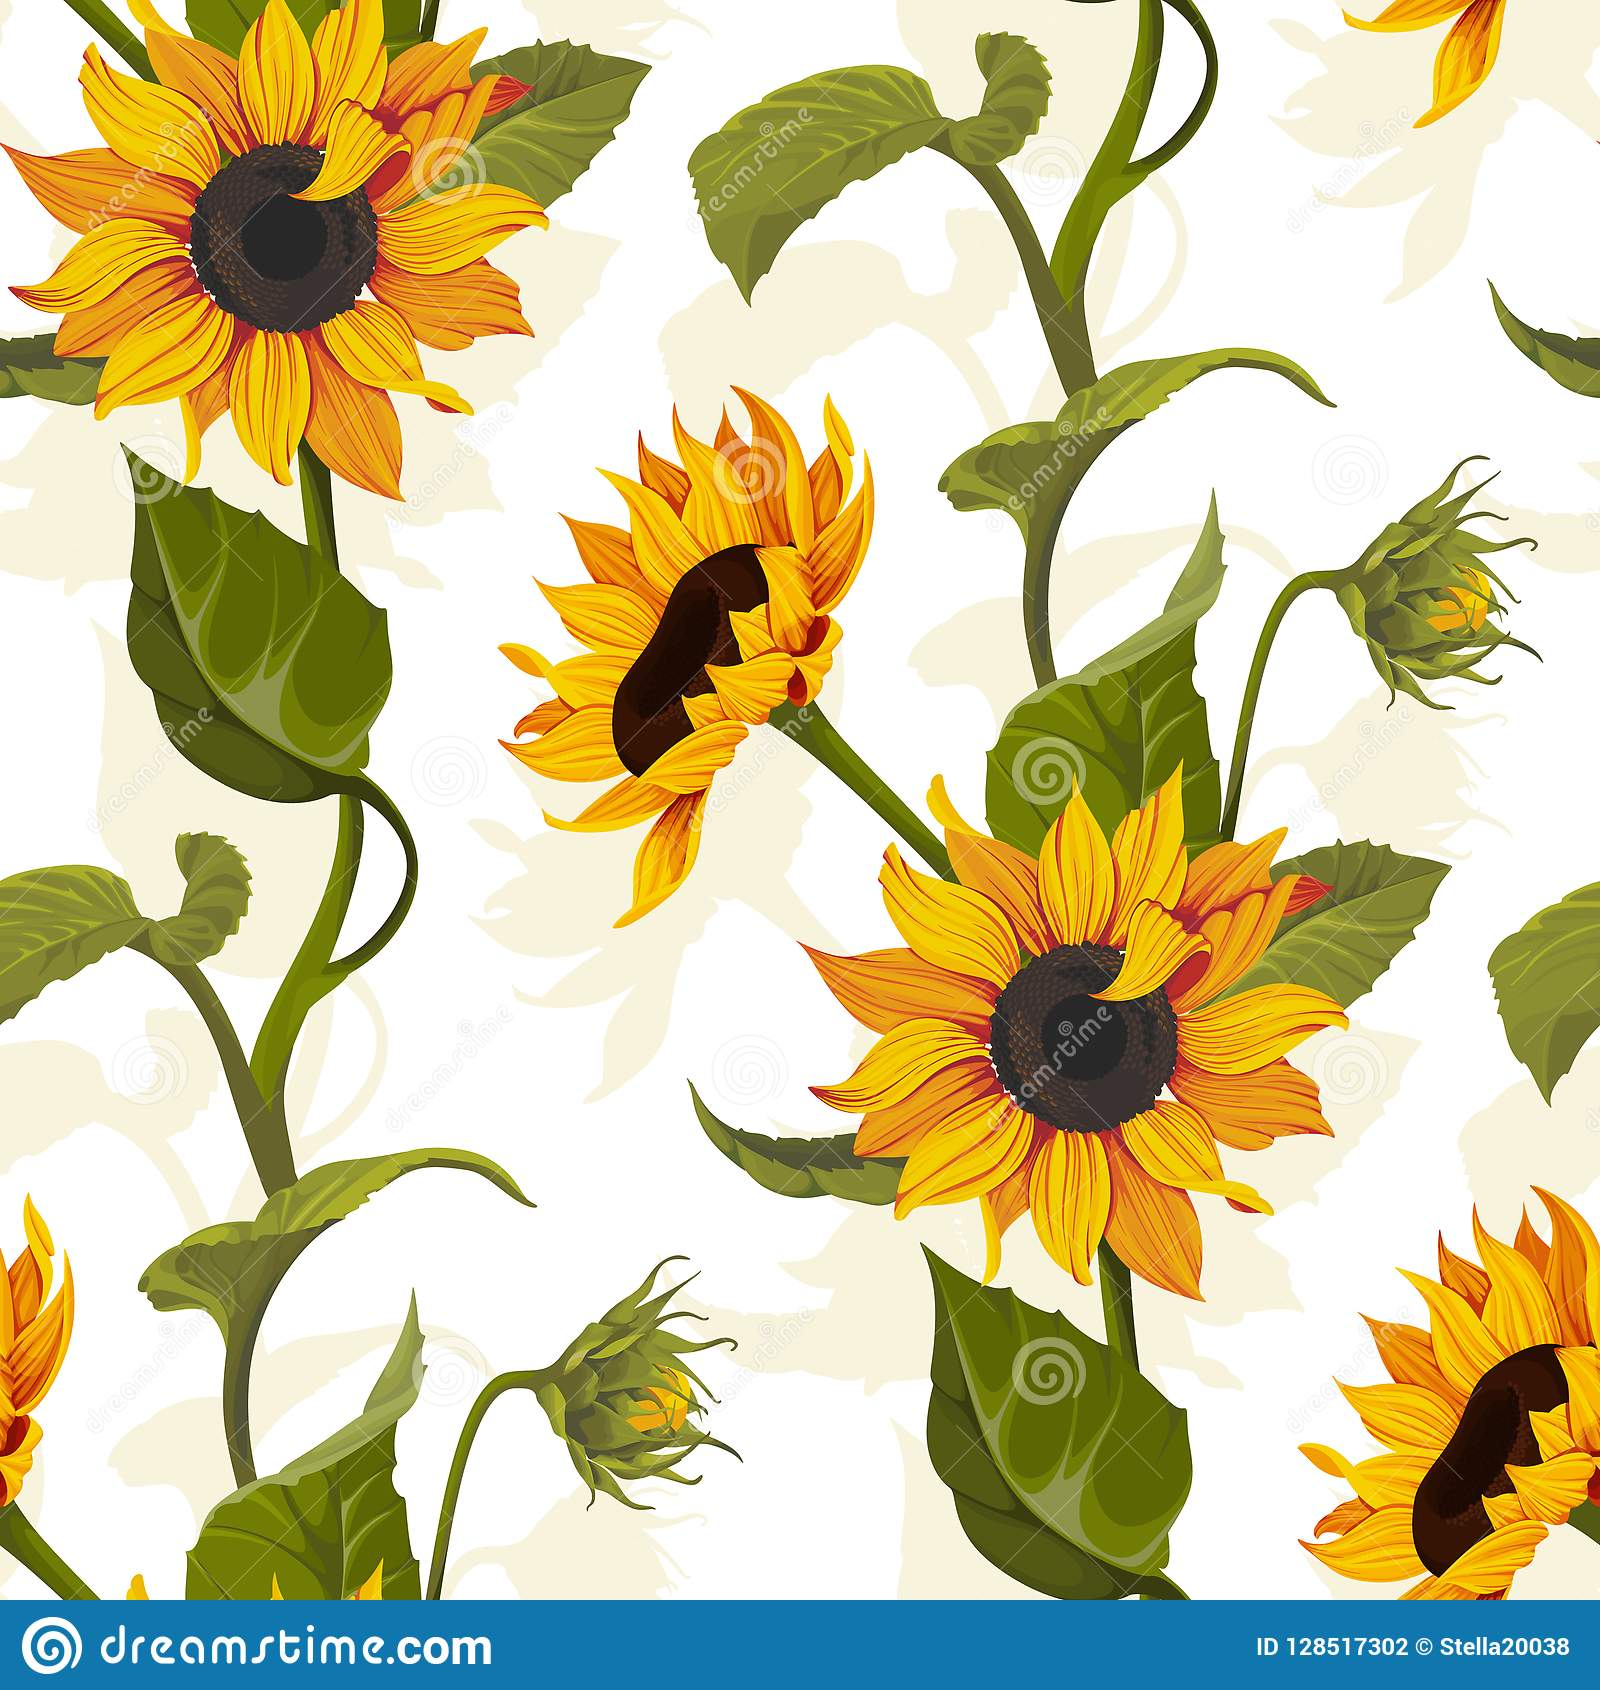 Sunflower Vector Seamless Pattern Floral Texture On Bright ...